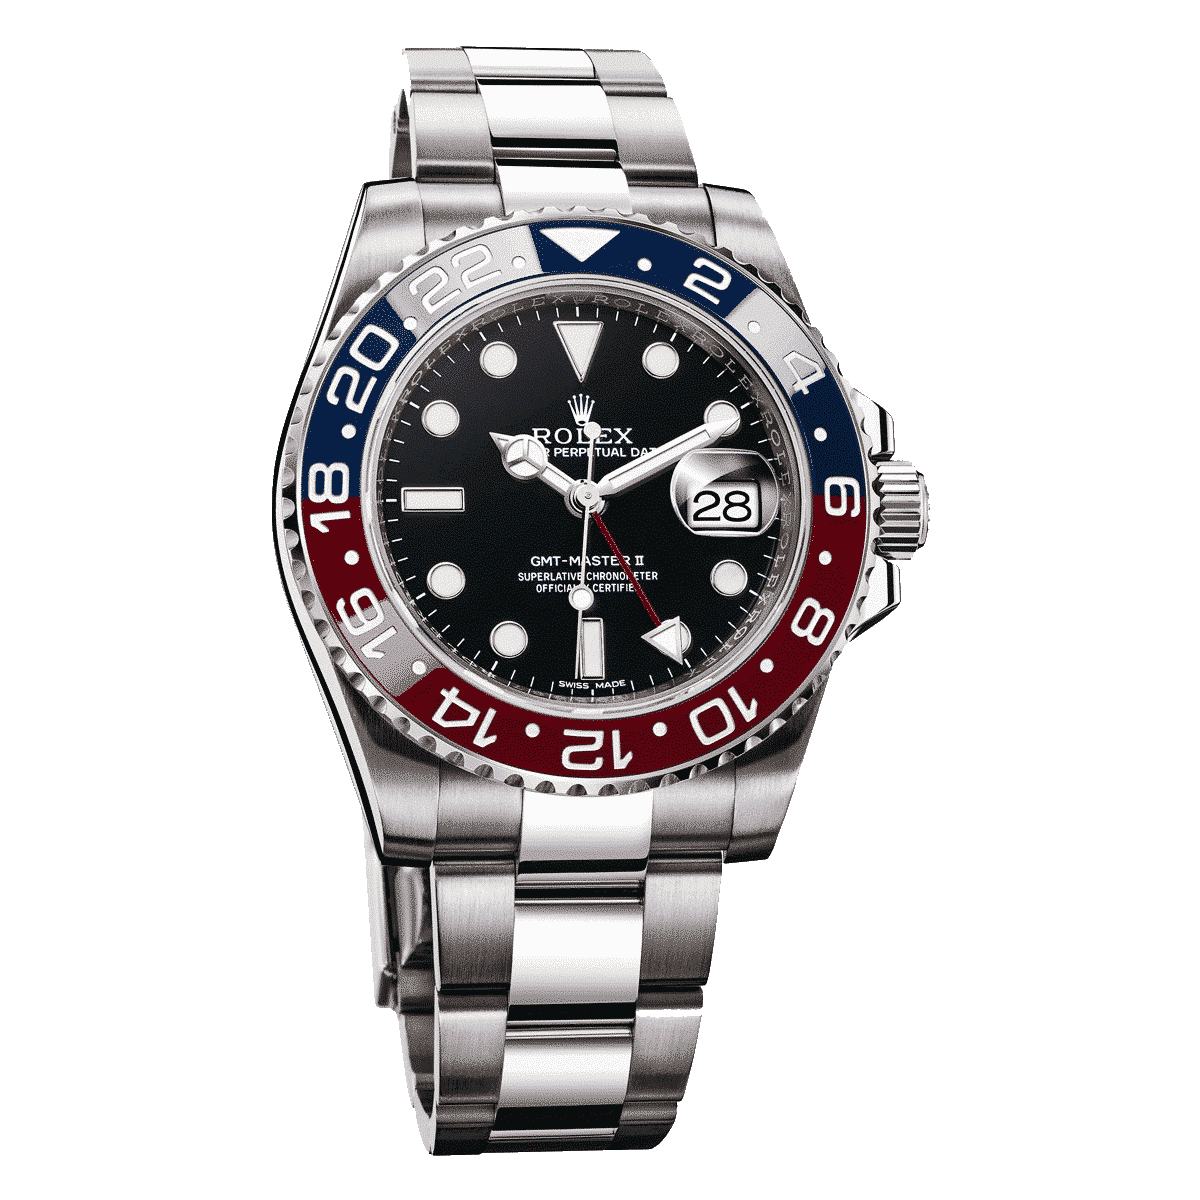 Rolex Oyster Perpetual Gmt Master Ii Lionel Meylan Vevey